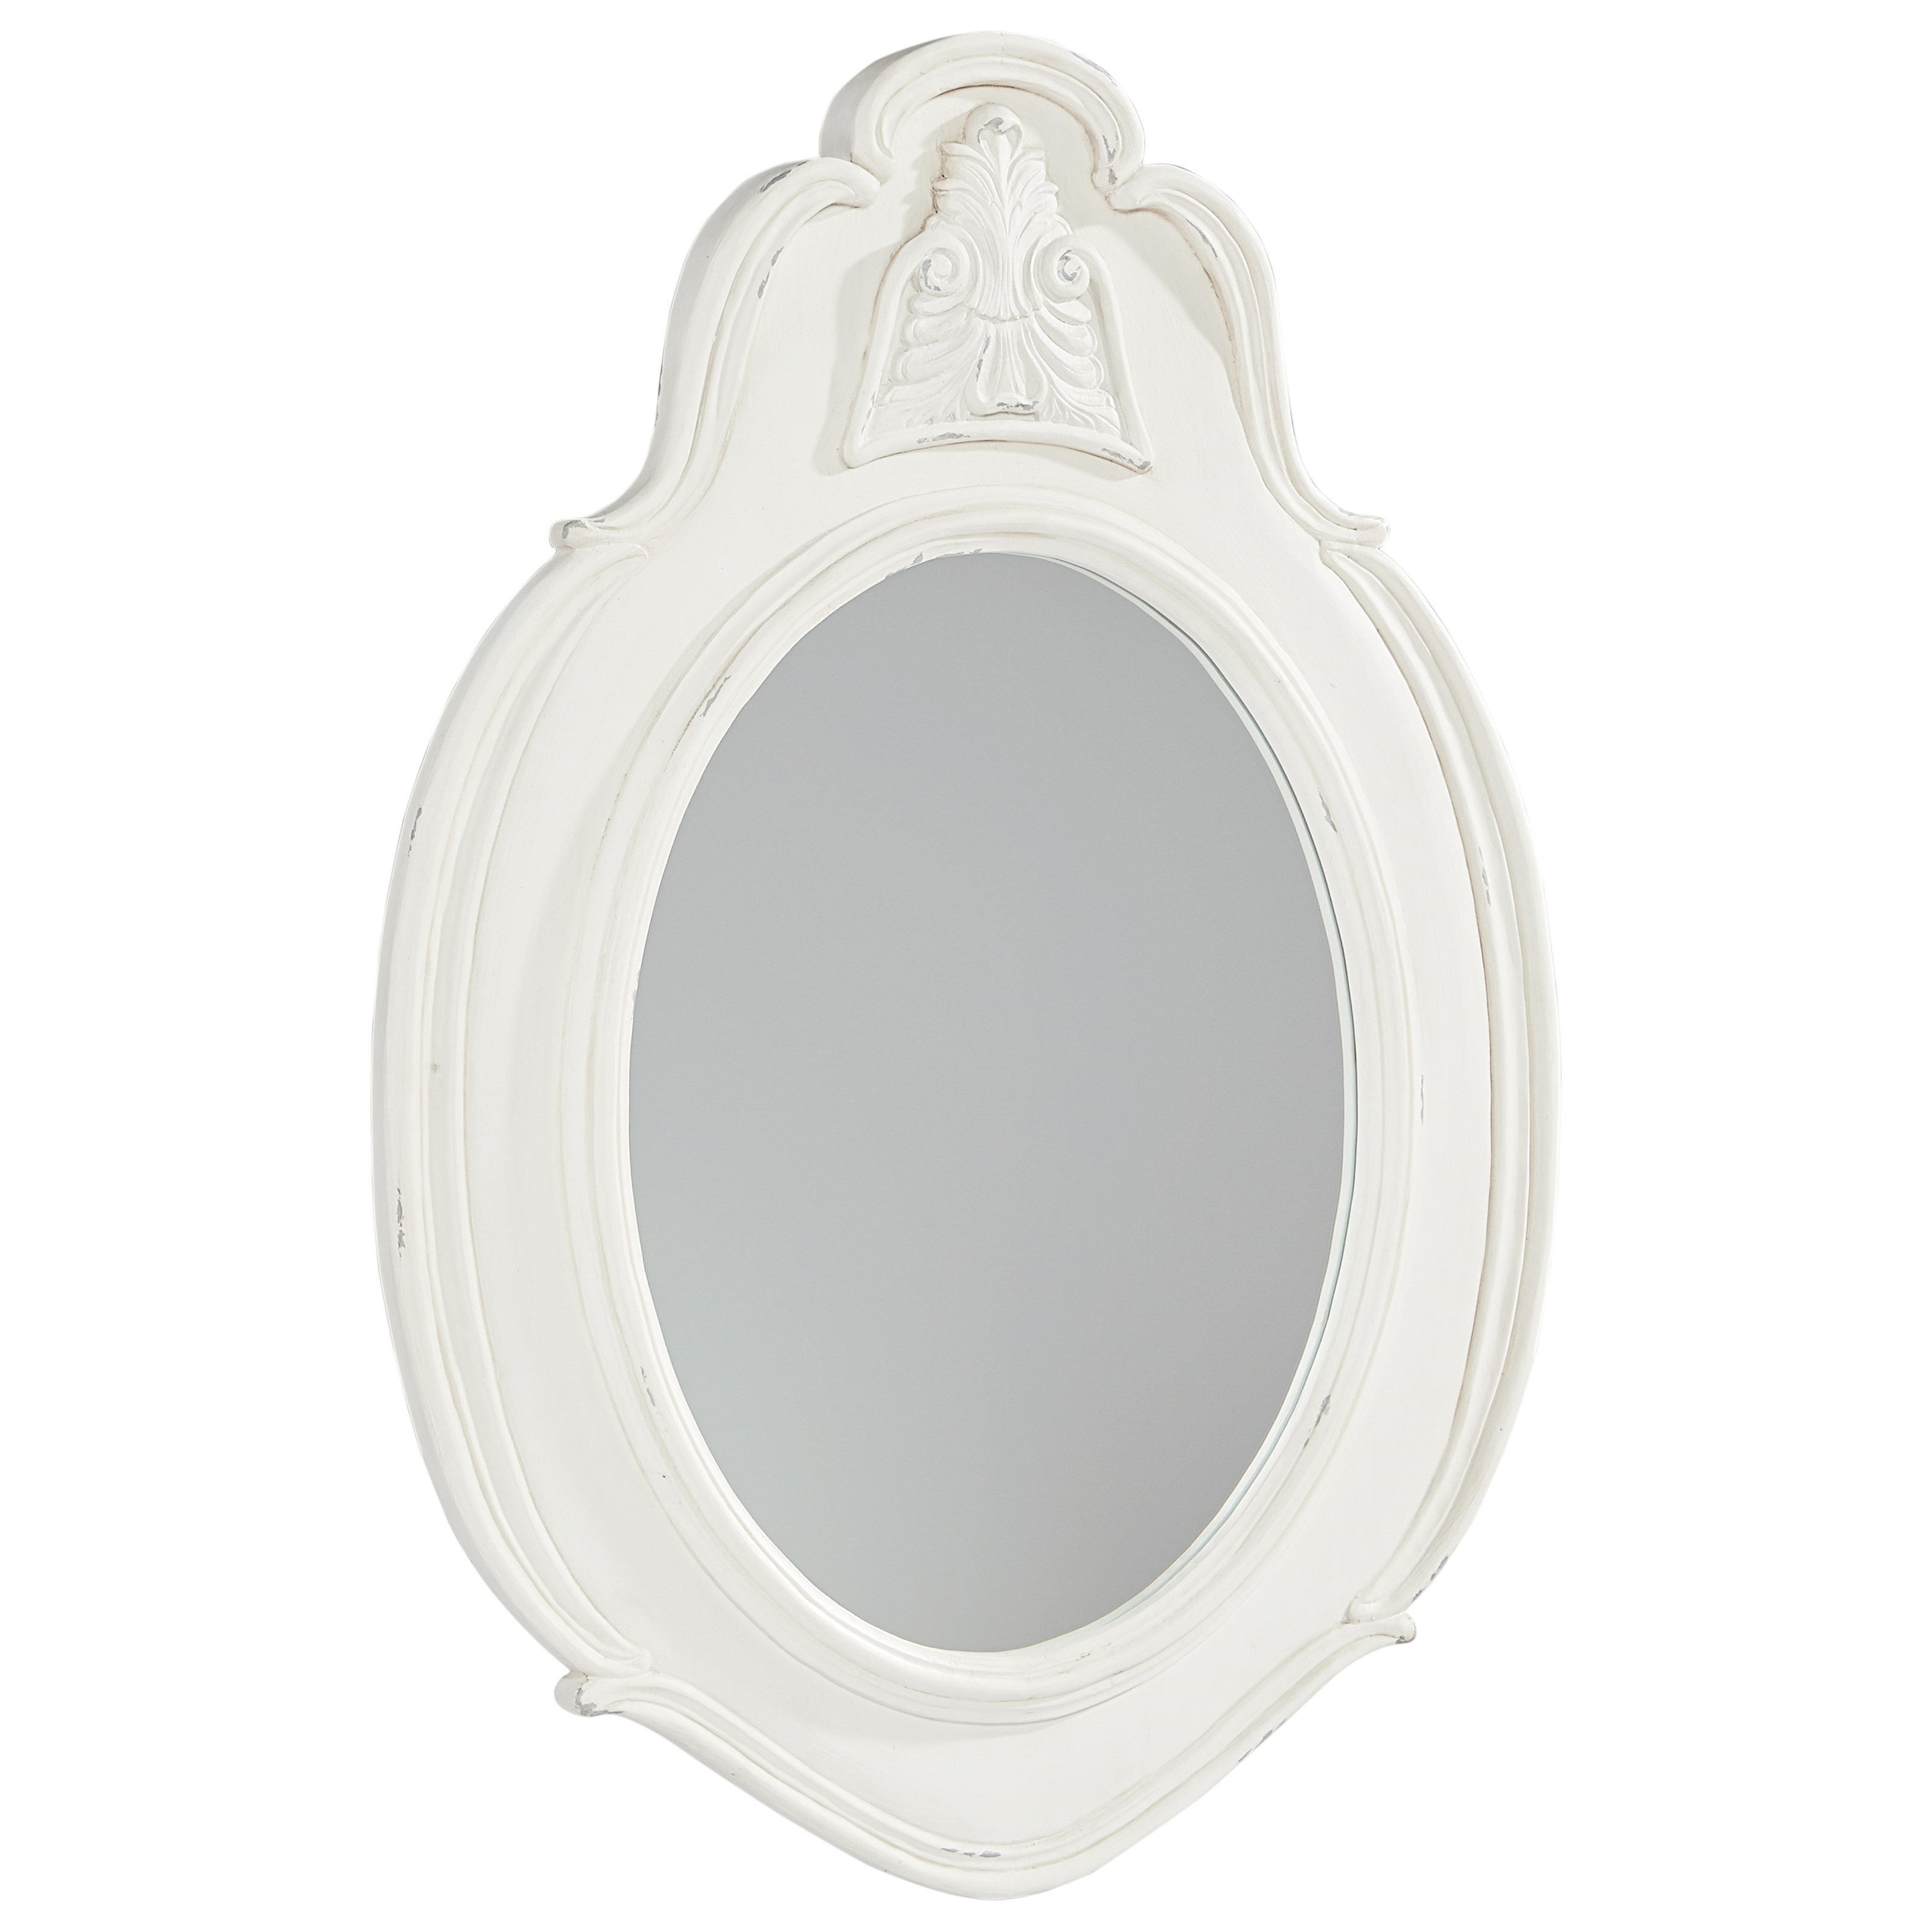 Magnolia Home by Joanna Gaines French Inspired Small Cameo Mirror - Jo's White - Item Number: 3070508B